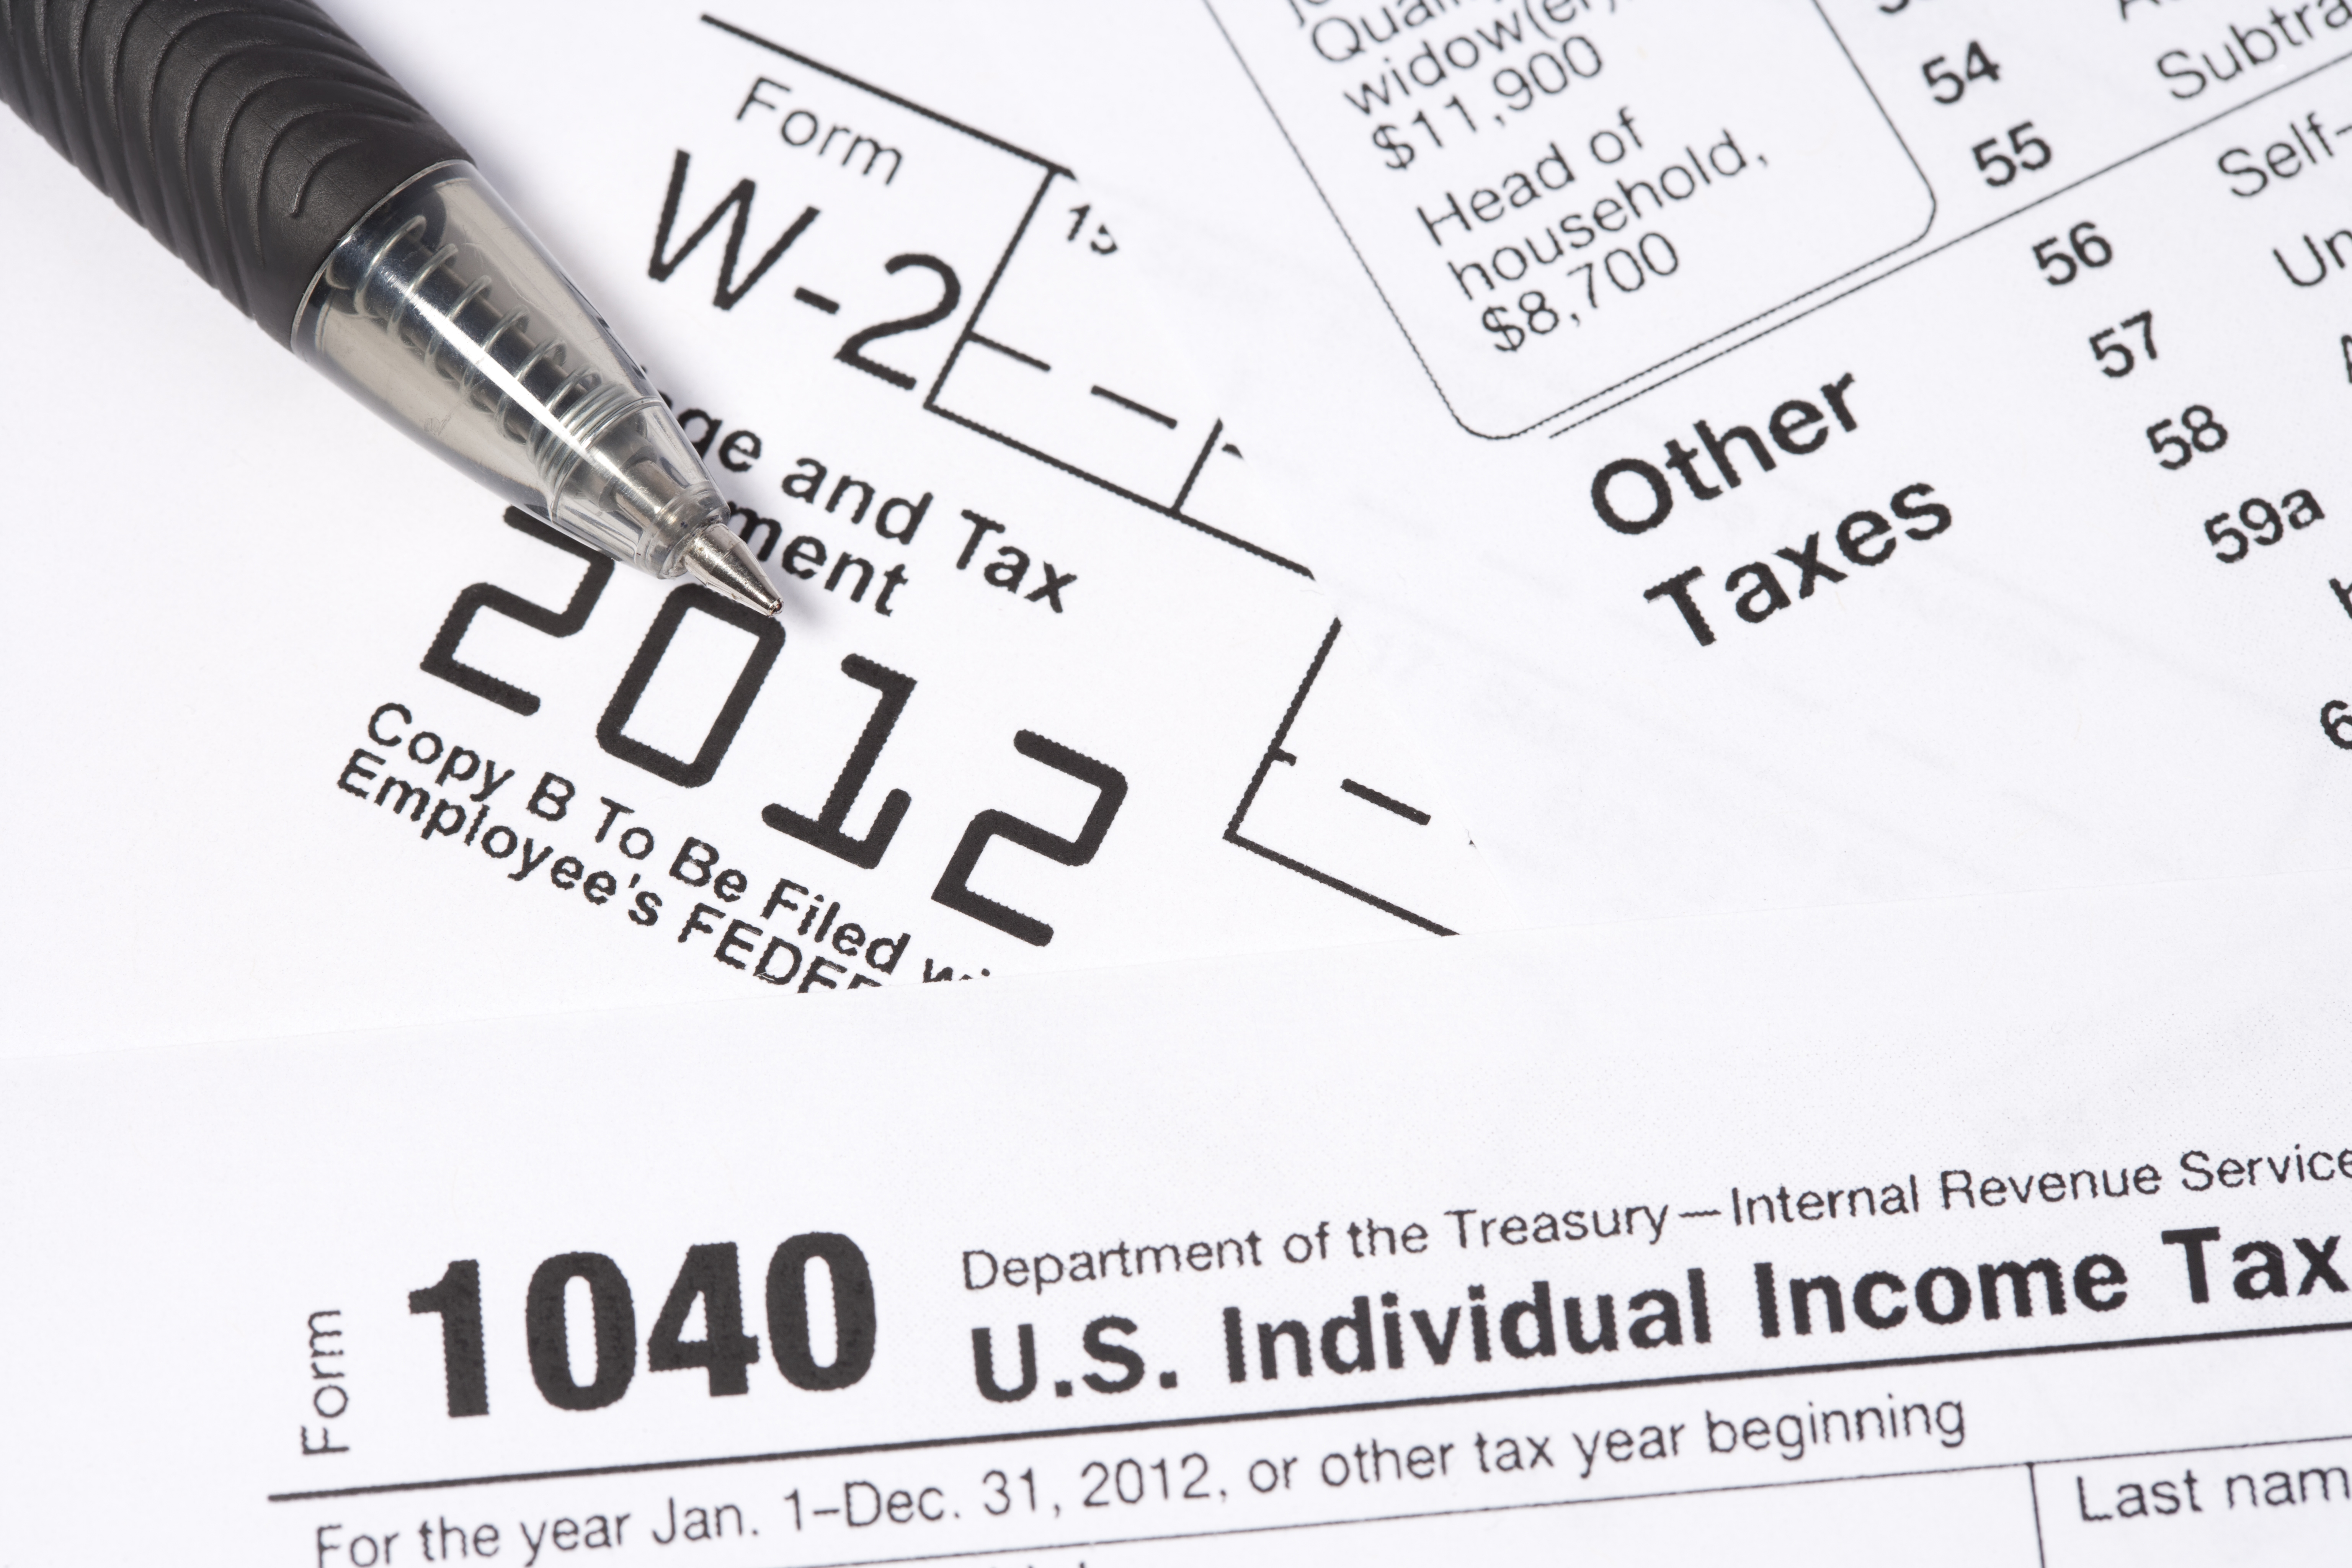 My Federal Withheld on My W-2 Is Blank | Career Trend